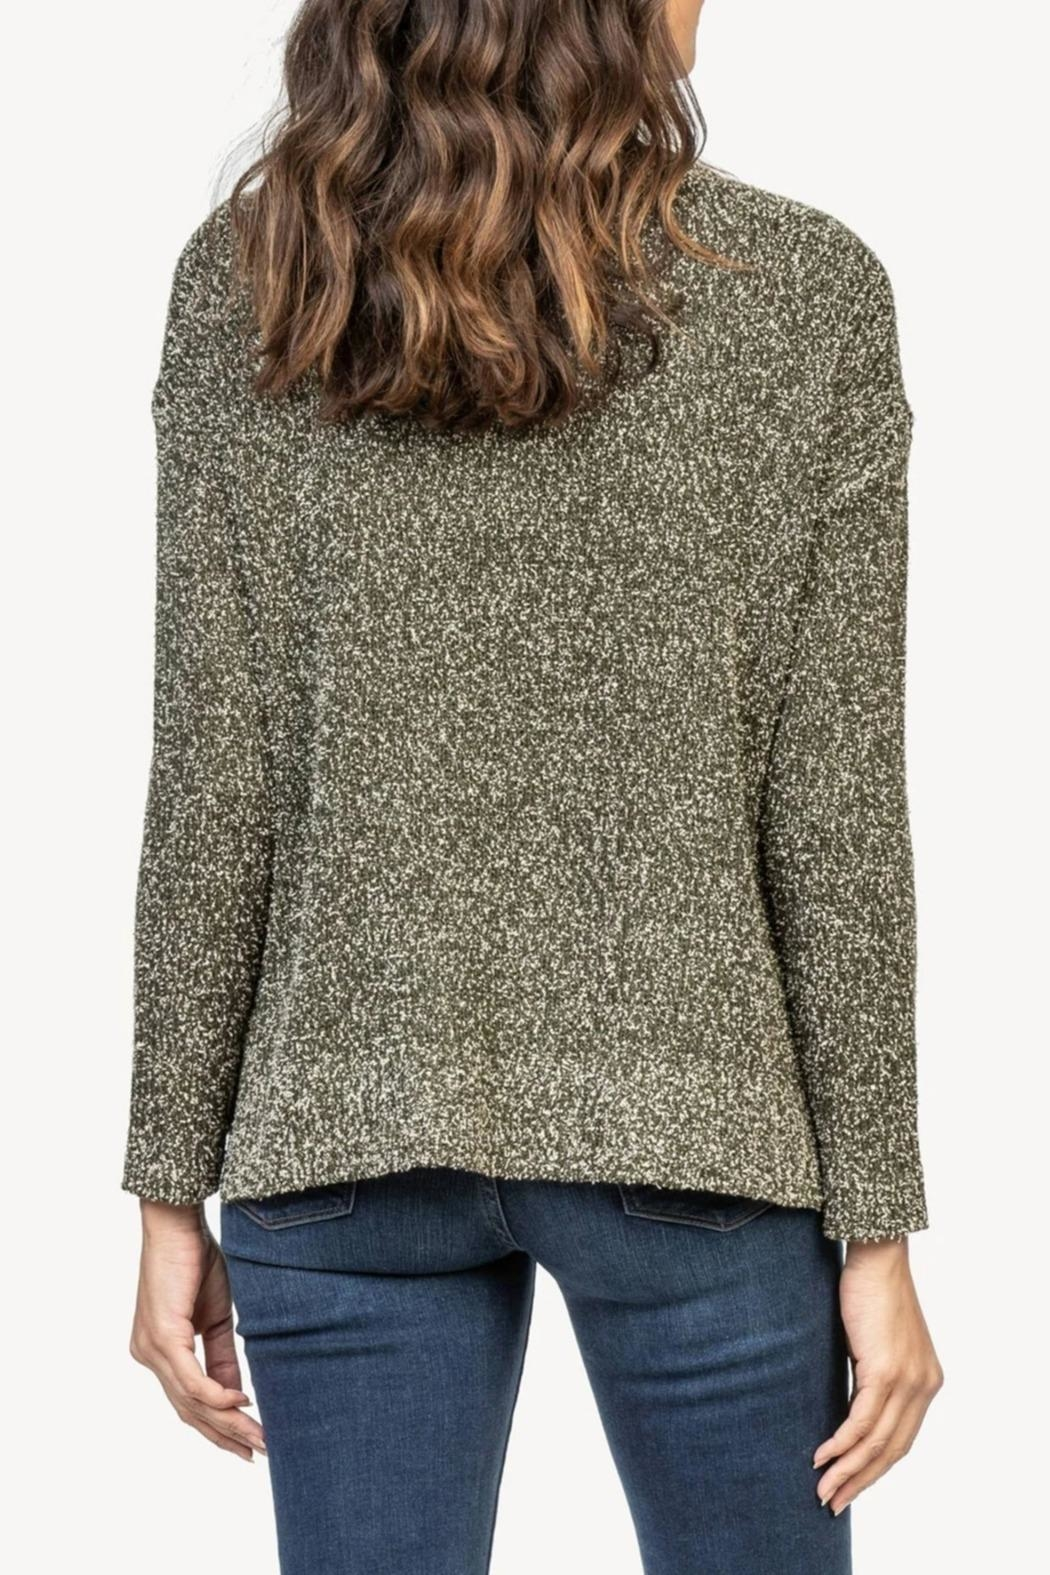 Lilla P Pullover Sweater - Front Full Image